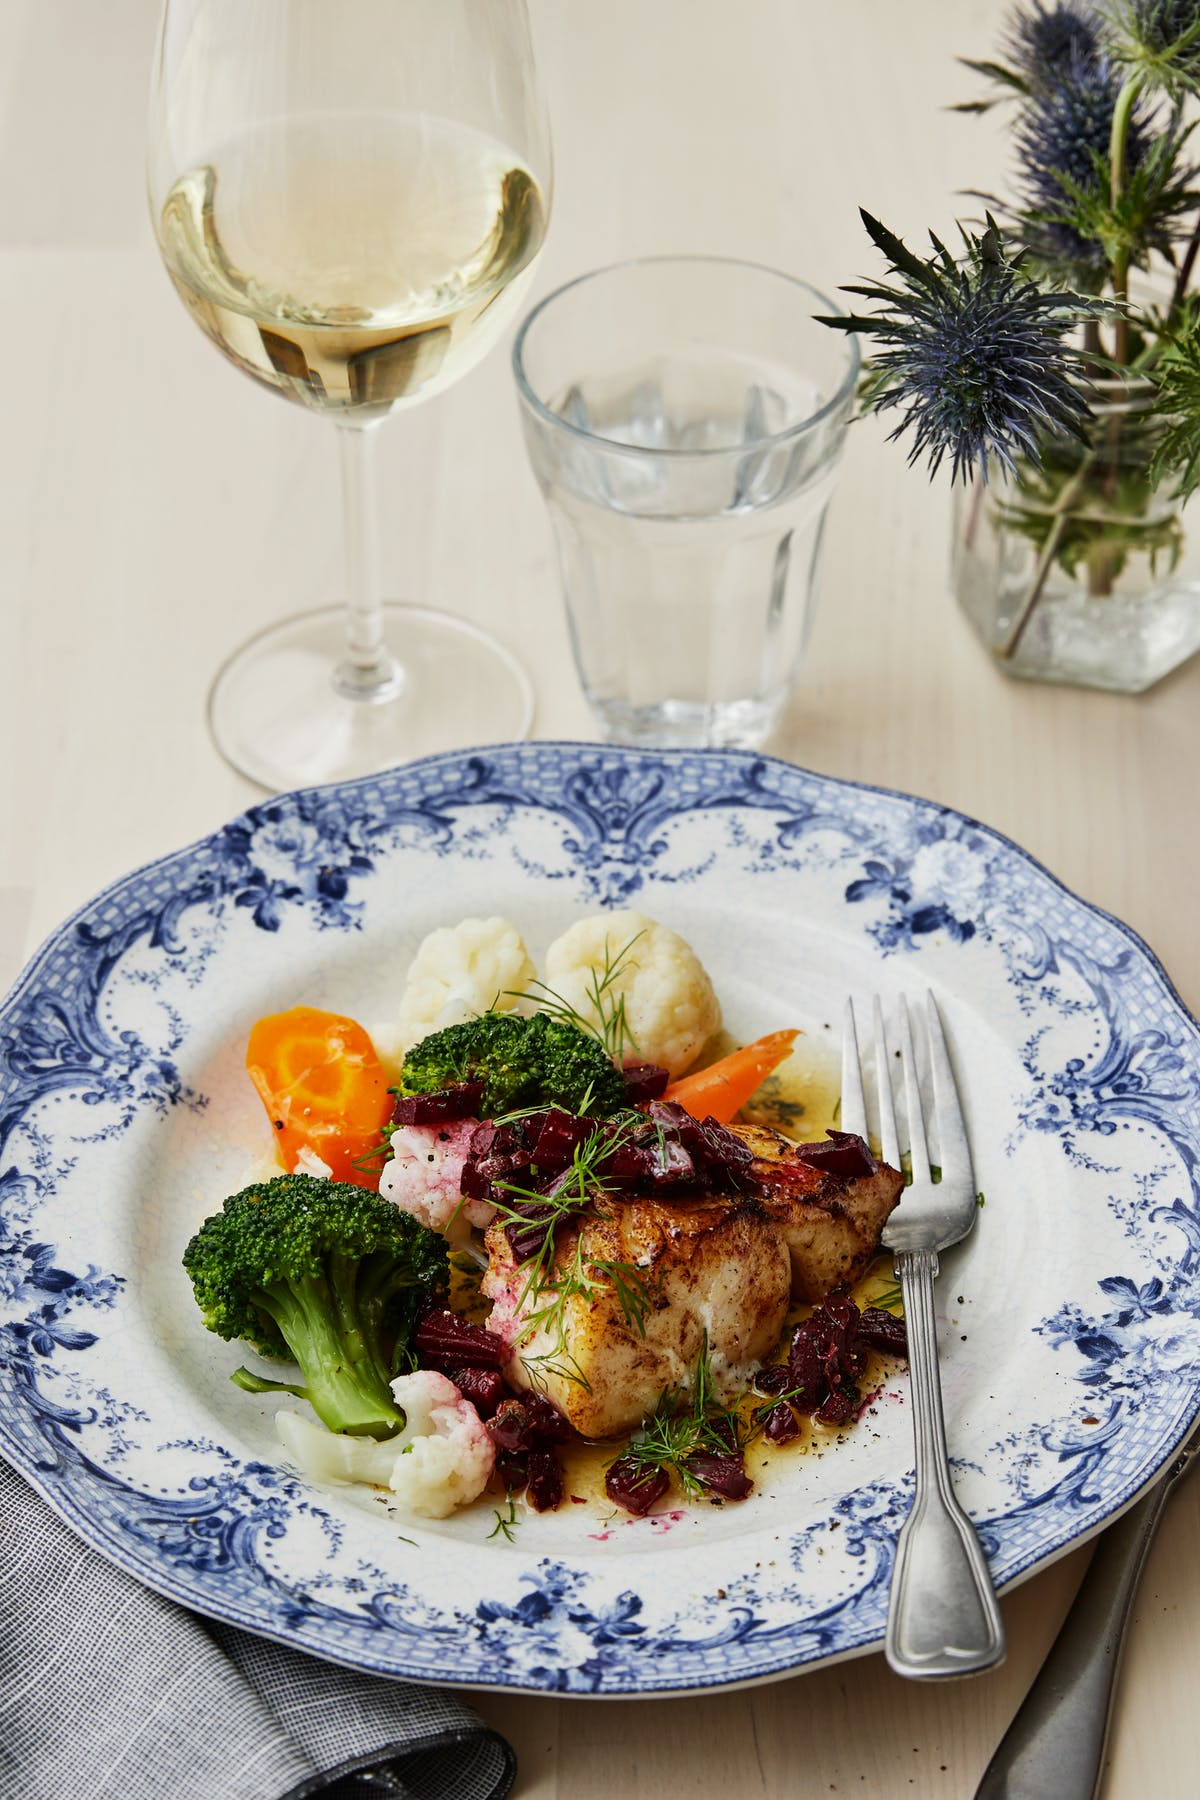 Pan-fried cod with beet salad and browned butter